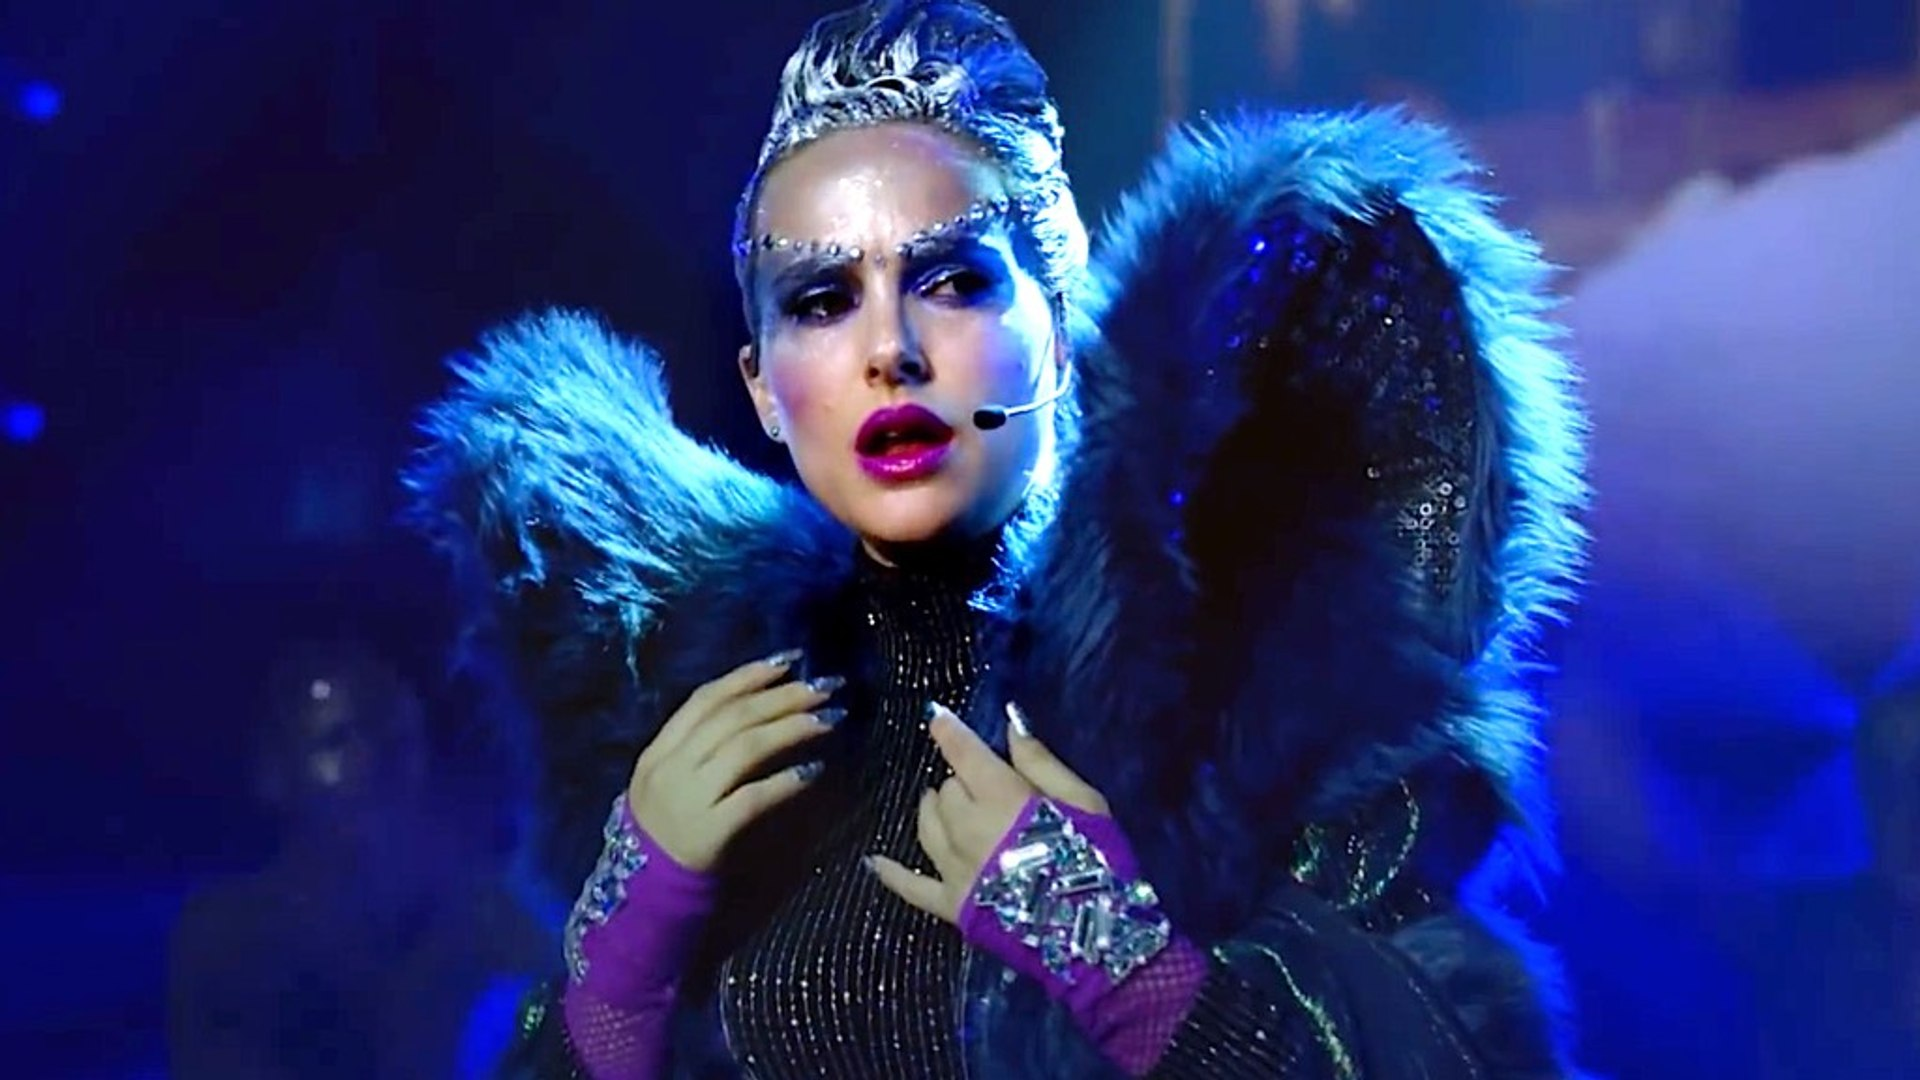 vox_lux_poster